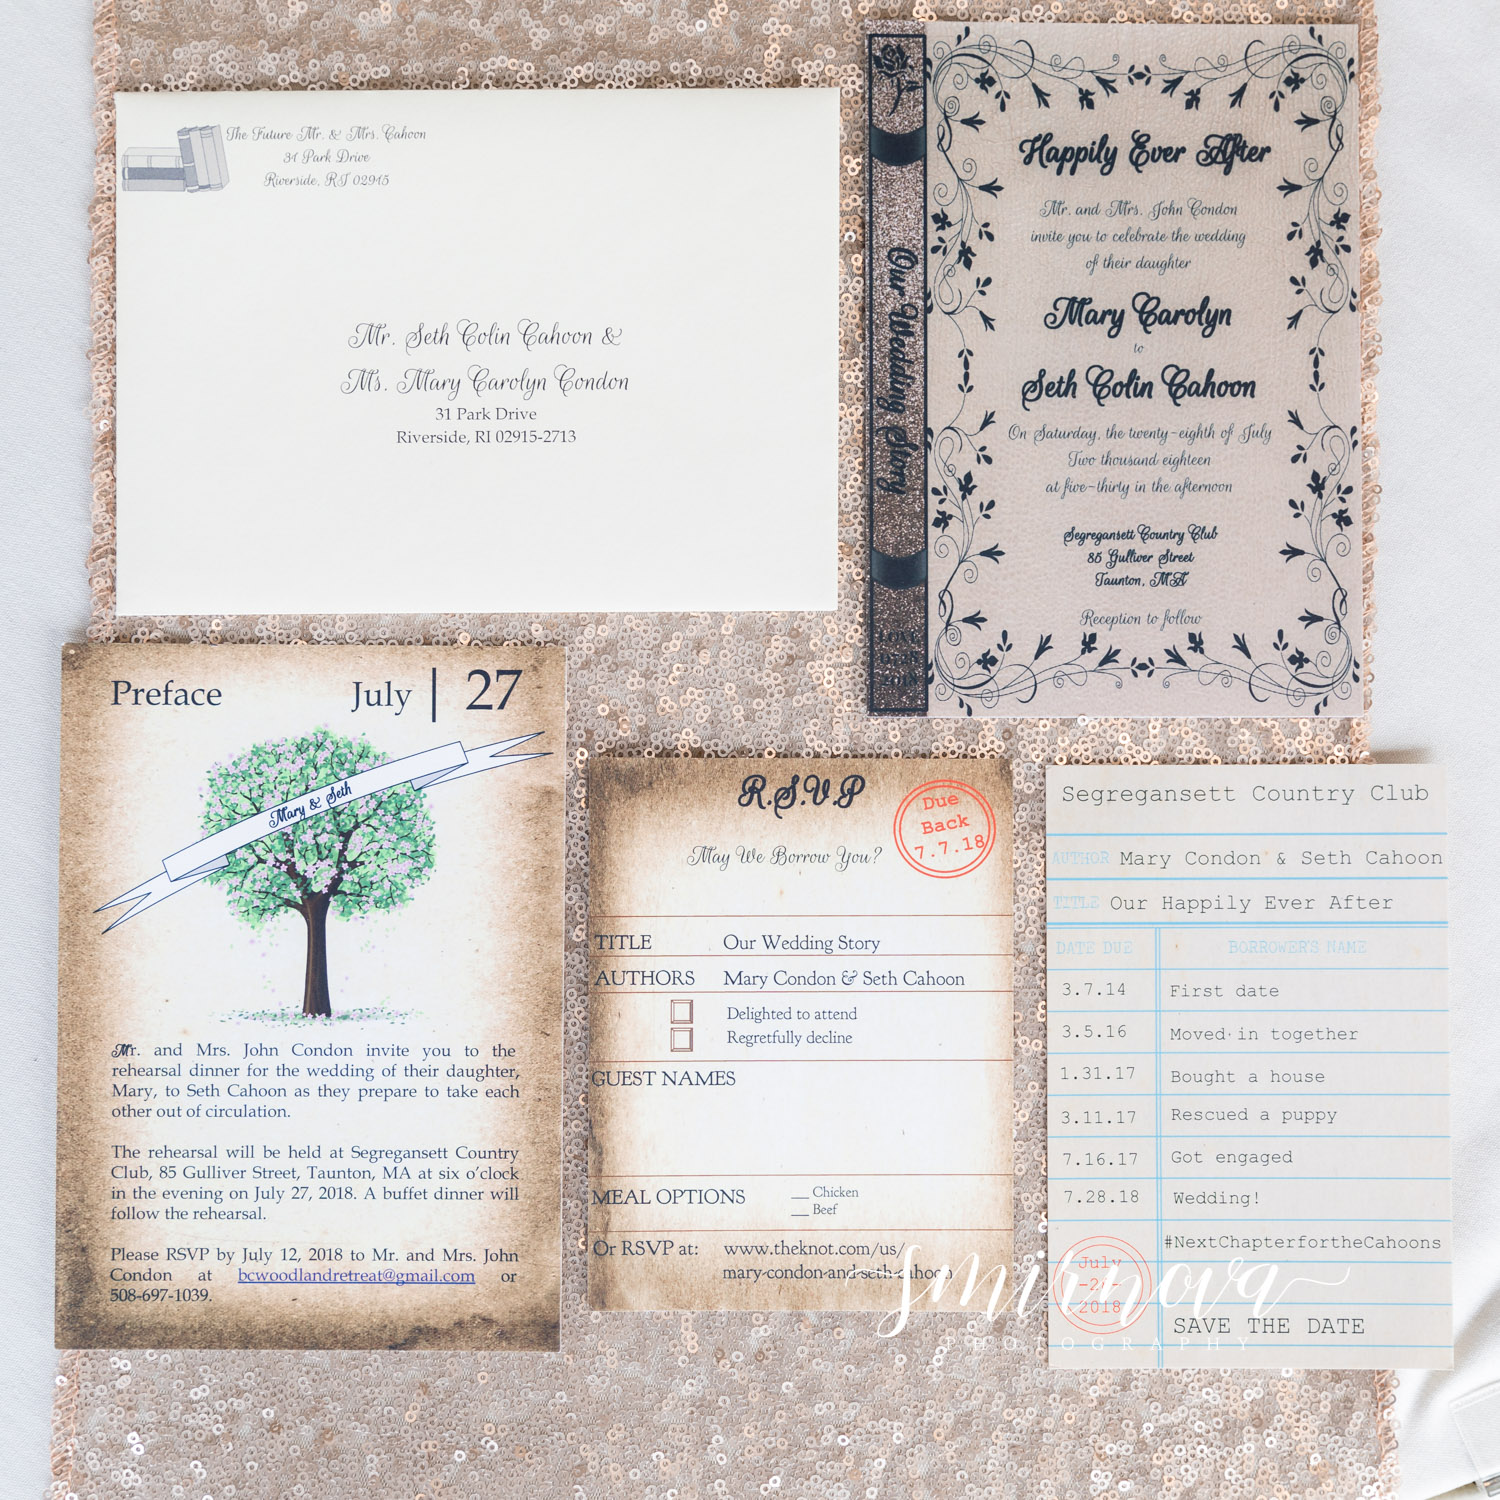 Book Themed Wedding at Segregansett Country Club | SMIRNOVA PHOTOGRAPHY